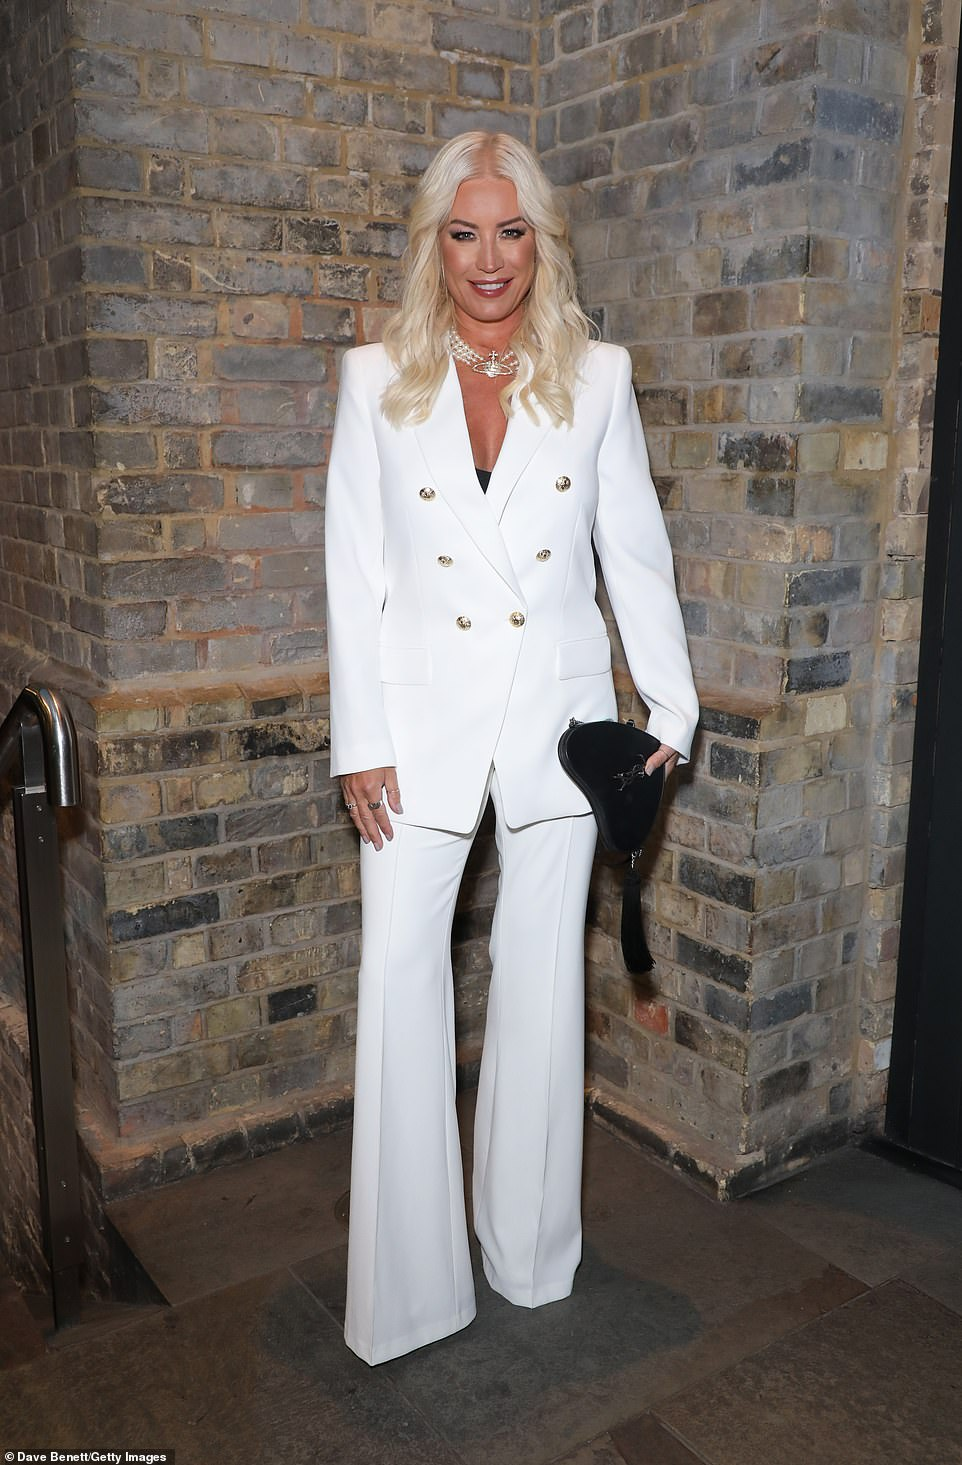 Star: Denise made sure all eyes were on her in the chic white suit